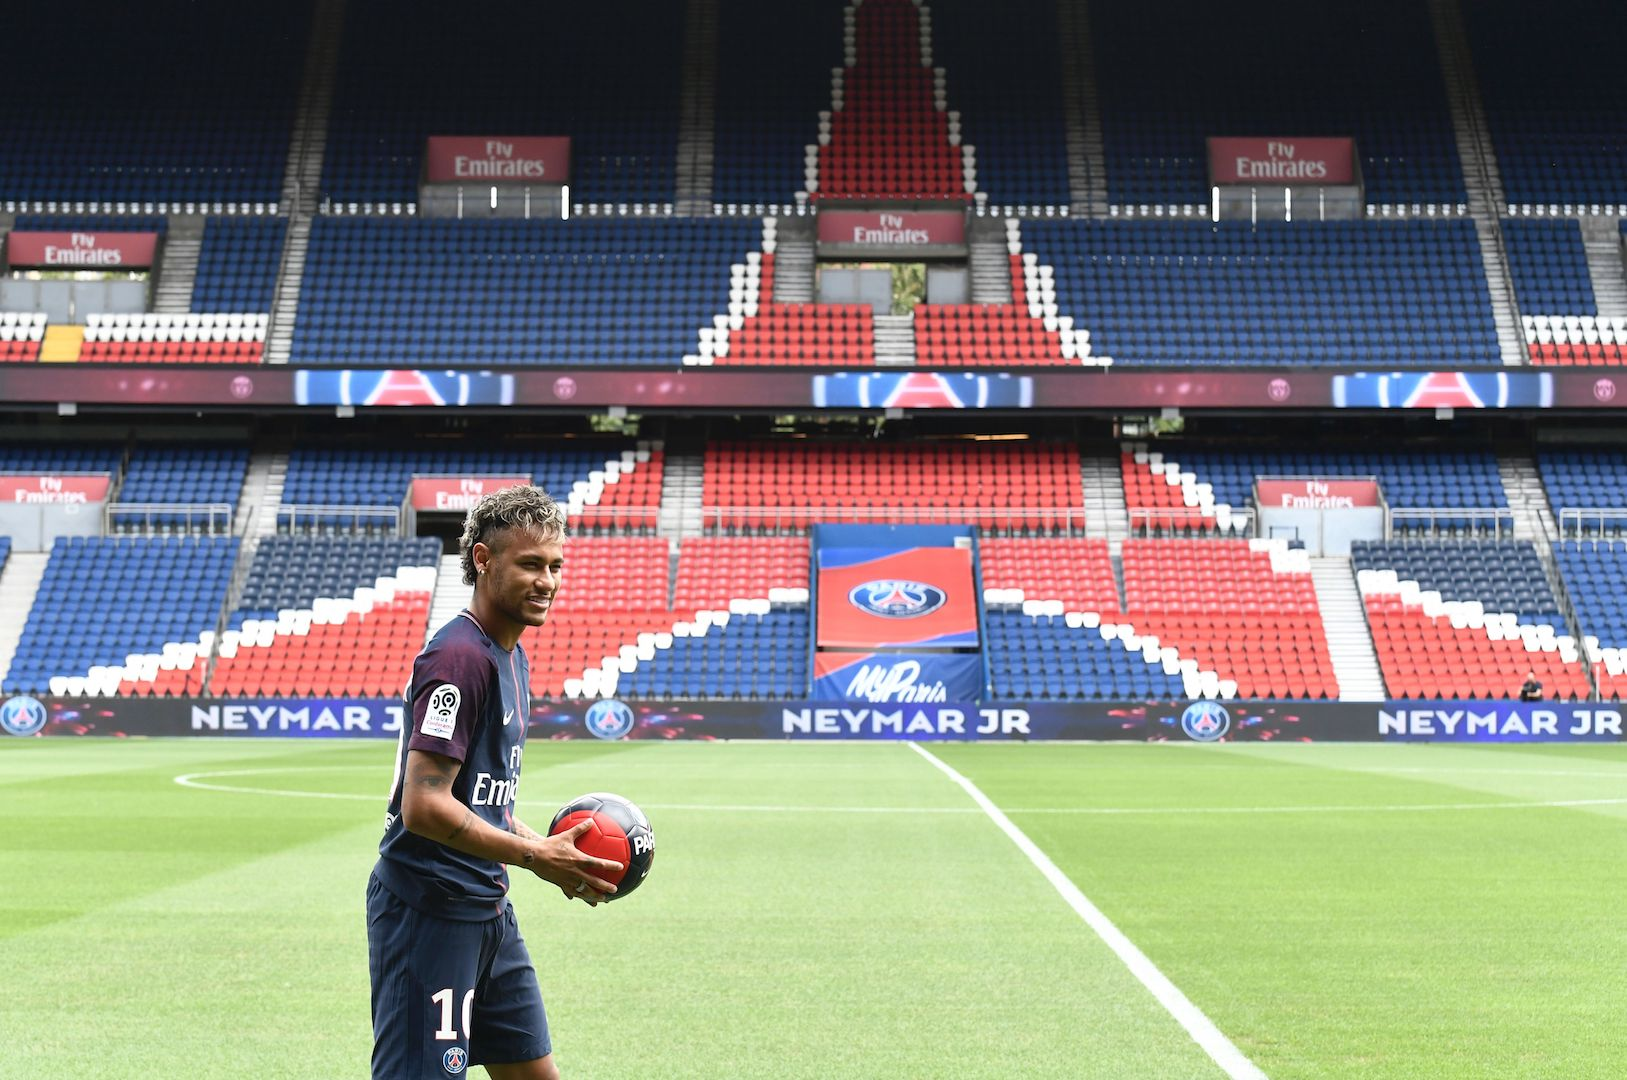 "Brazilian superstar Neymar poses with a ball during his official presentation at the Parc des Princes stadium on August 4, 2017 in Paris after agreeing a five-year contract following his world record 222 million euro ($260 million) transfer from Barcelona to Paris Saint Germain's (PSG). Paris Saint-Germain have signed Brazilian forward Neymar from Barcelona for a world-record transfer fee of 222 million euros (around $264 million), more than doubling the previous record. Neymar said he came to Paris Saint-Germain for a ""bigger challenge"" in his first public comments since arriving in the French capital. / AFP PHOTO / PHILIPPE LOPEZ (Photo credit should read PHILIPPE LOPEZ/AFP/Getty Images)"